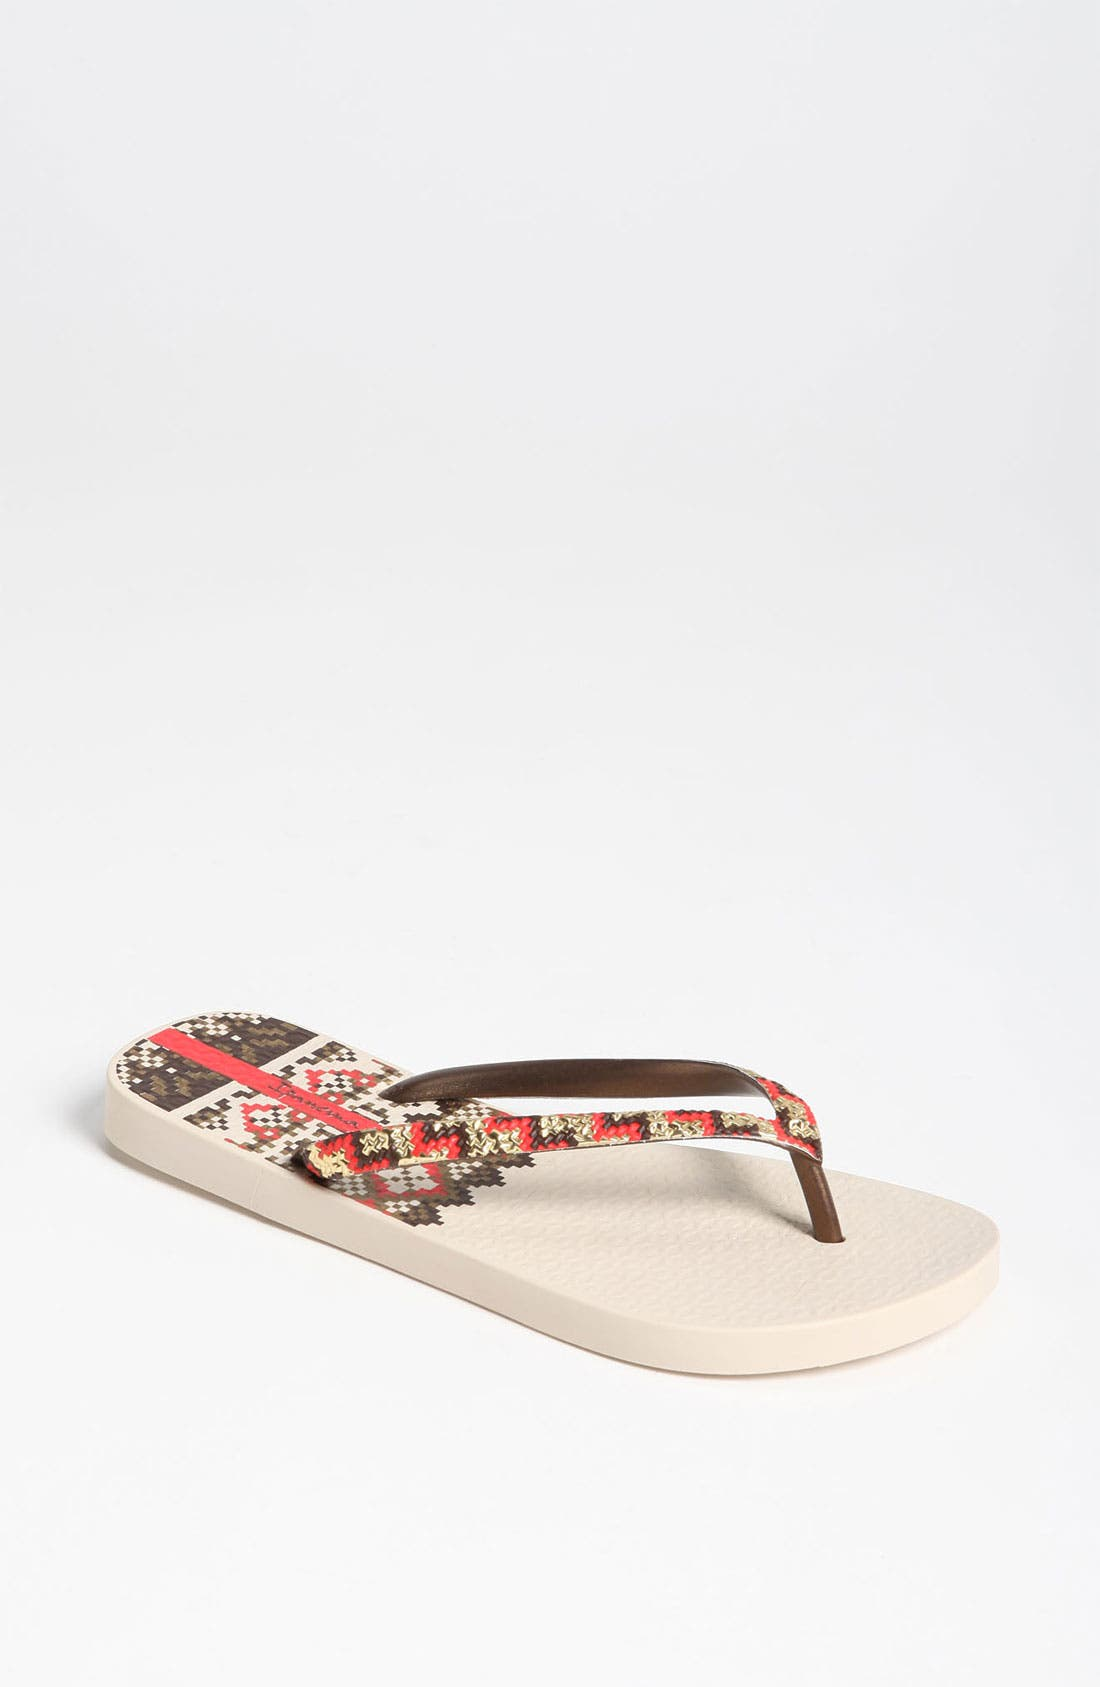 Alternate Image 1 Selected - Ipanema 'Trends VI' Flip Flop